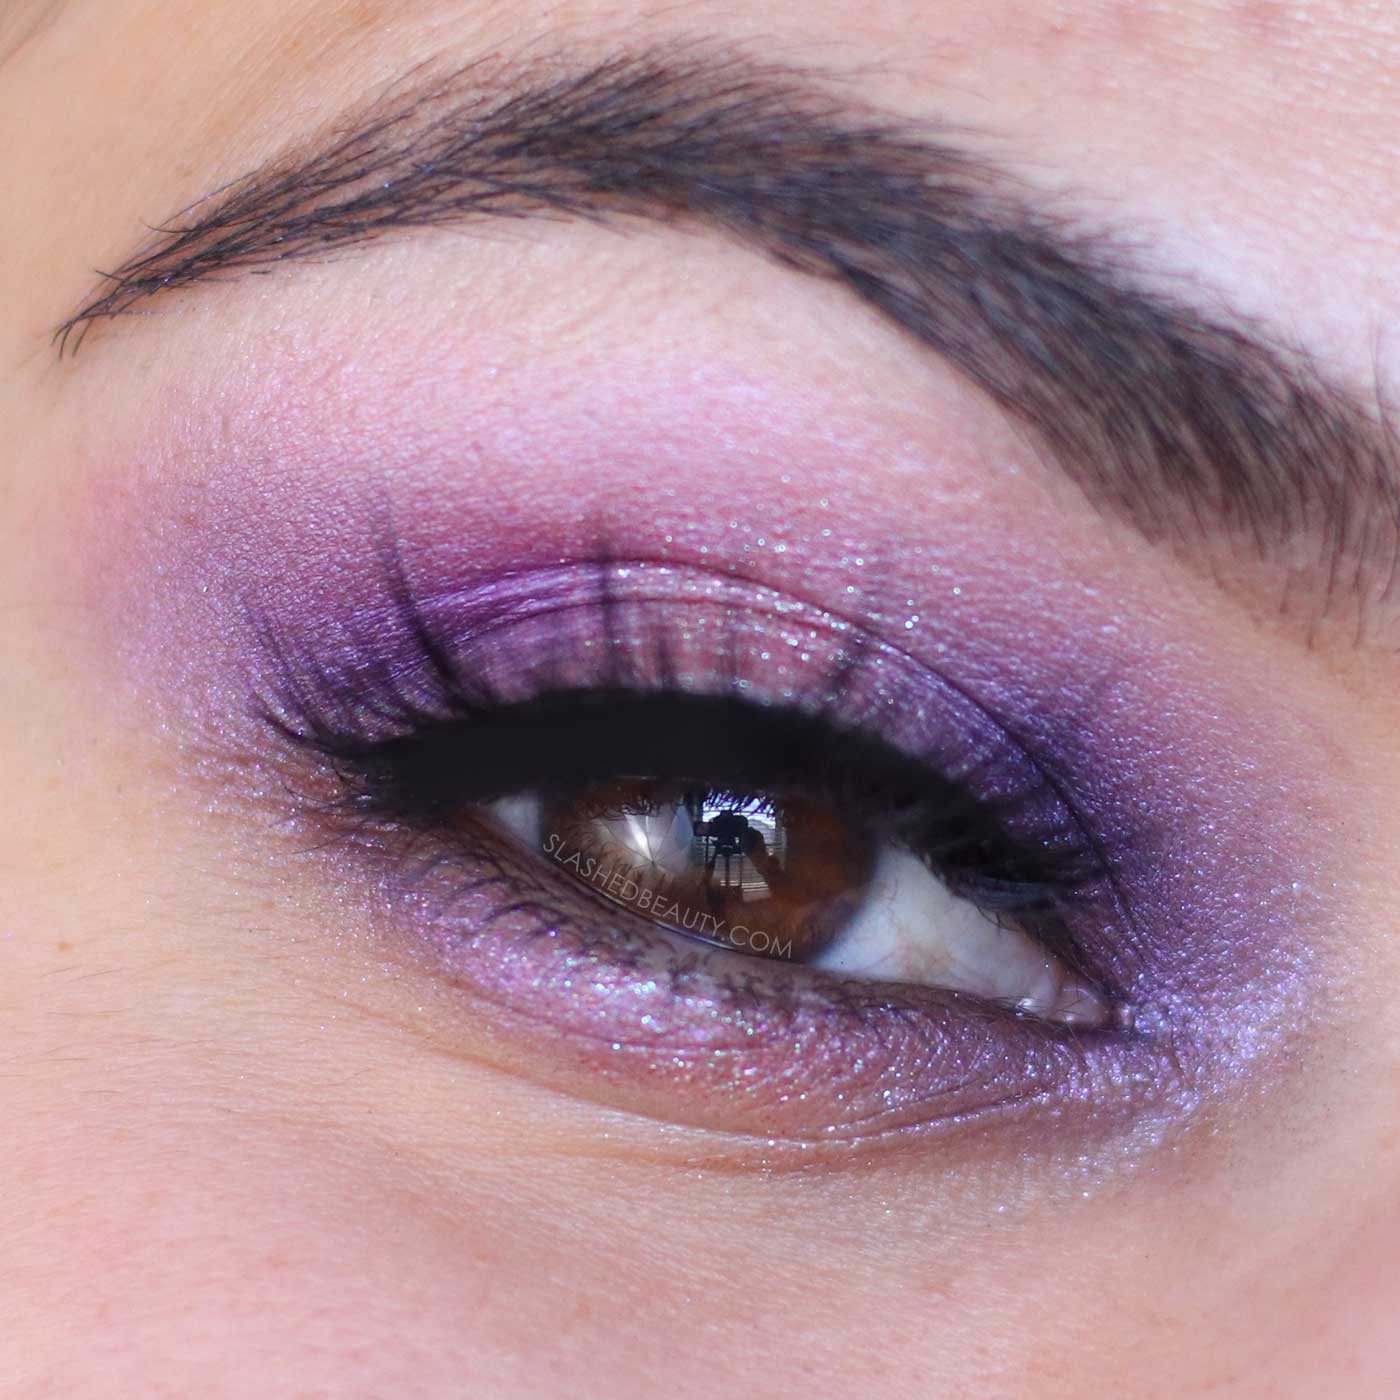 Eyeshadow look using NEW Urban Decay Naked Ultraviolet Palette Review & Swatches | Slashed Beauty